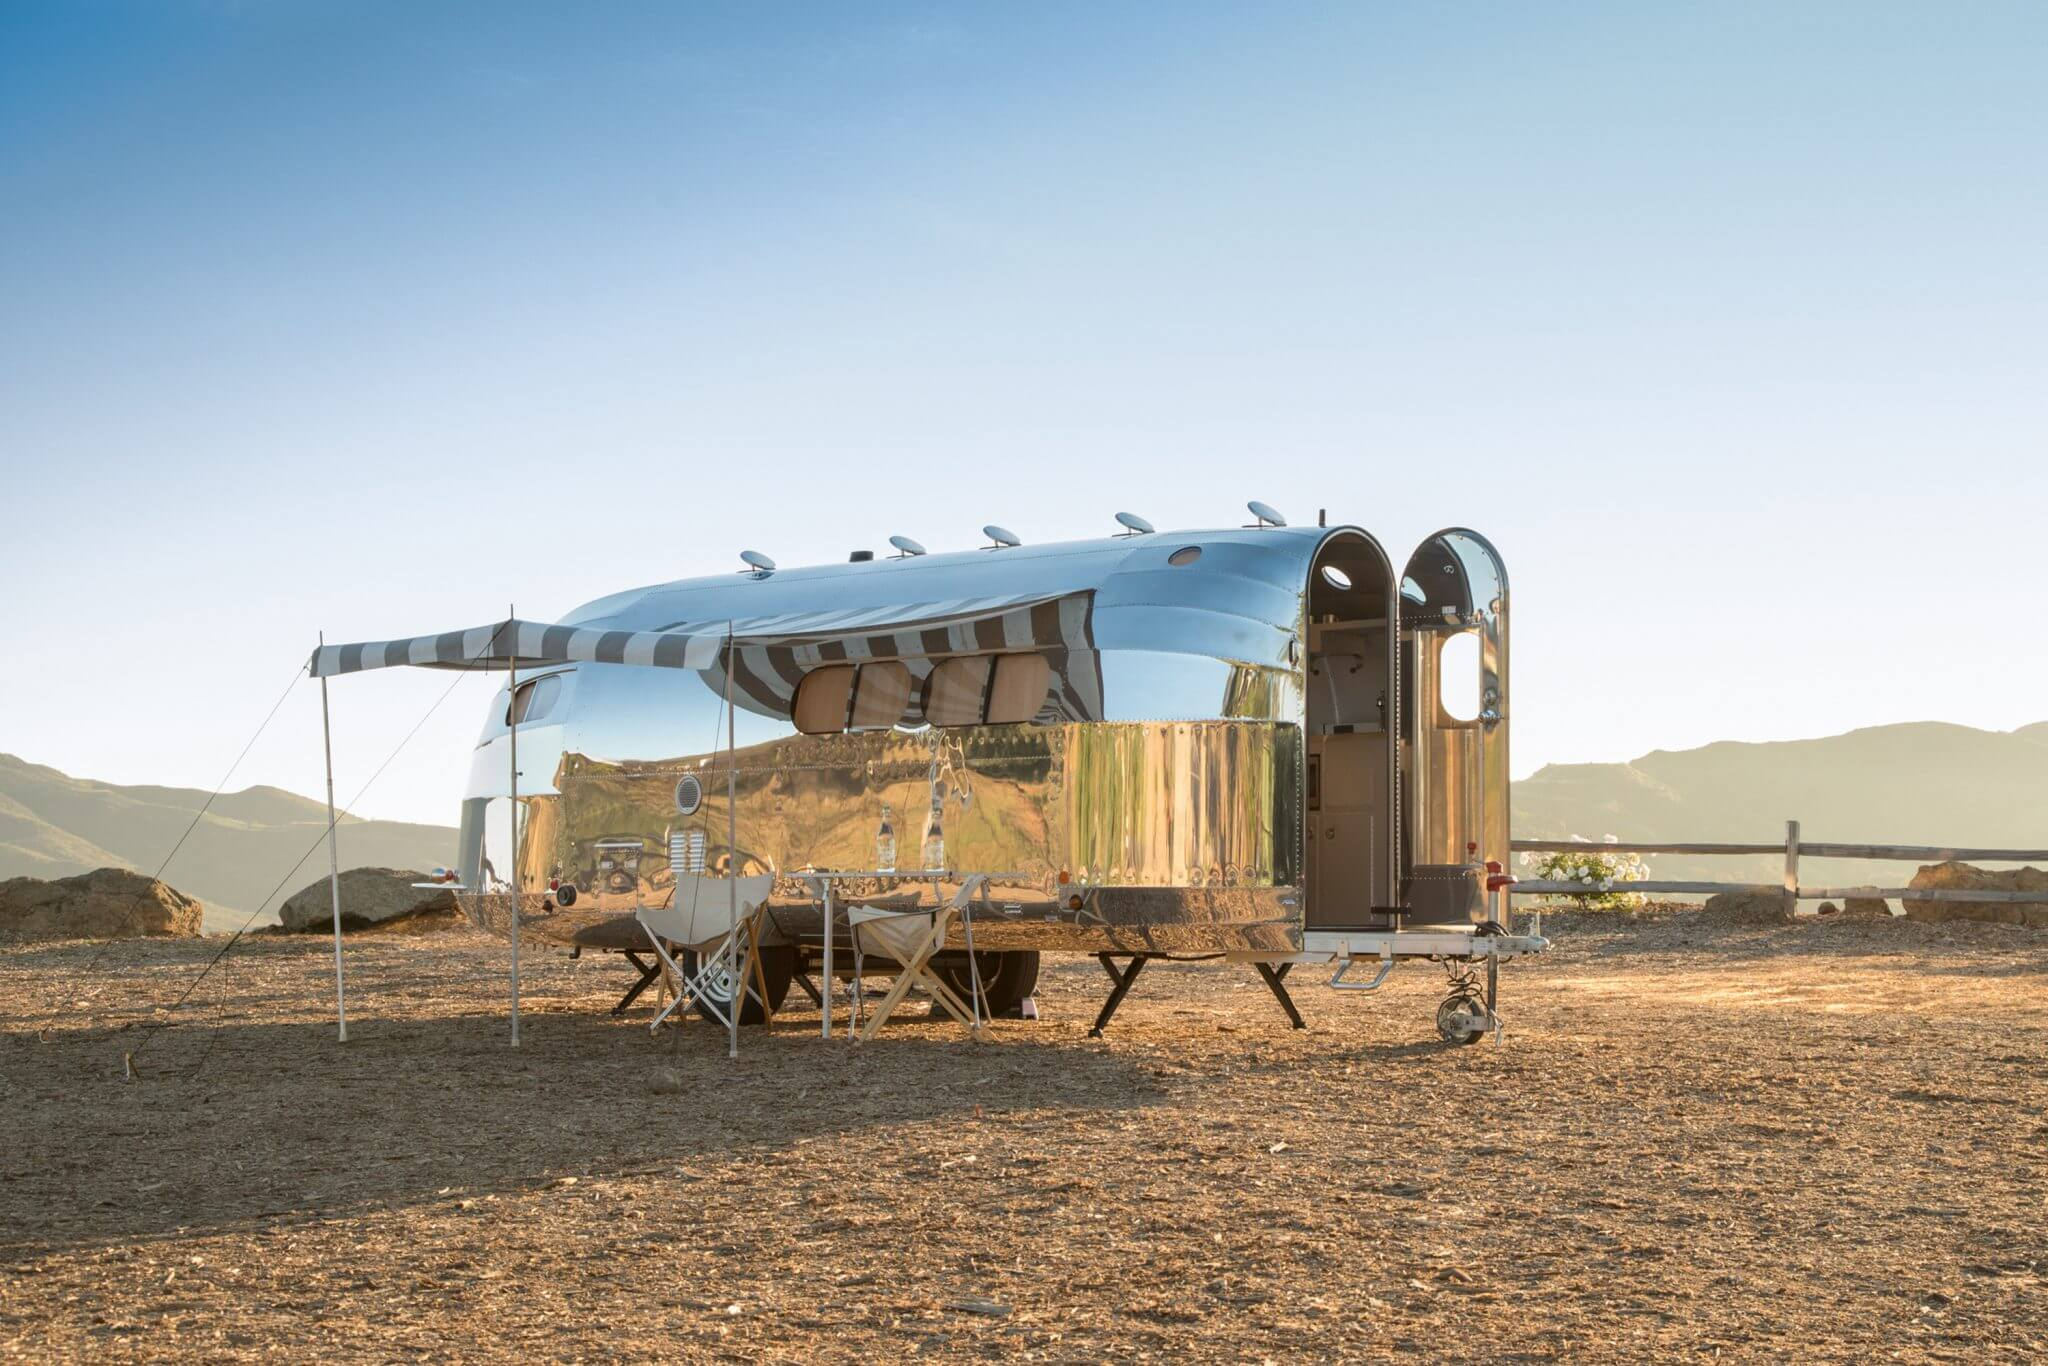 How Can I Compare Travel Trailer or Motorhome Brands to Bowlus Road Chief?